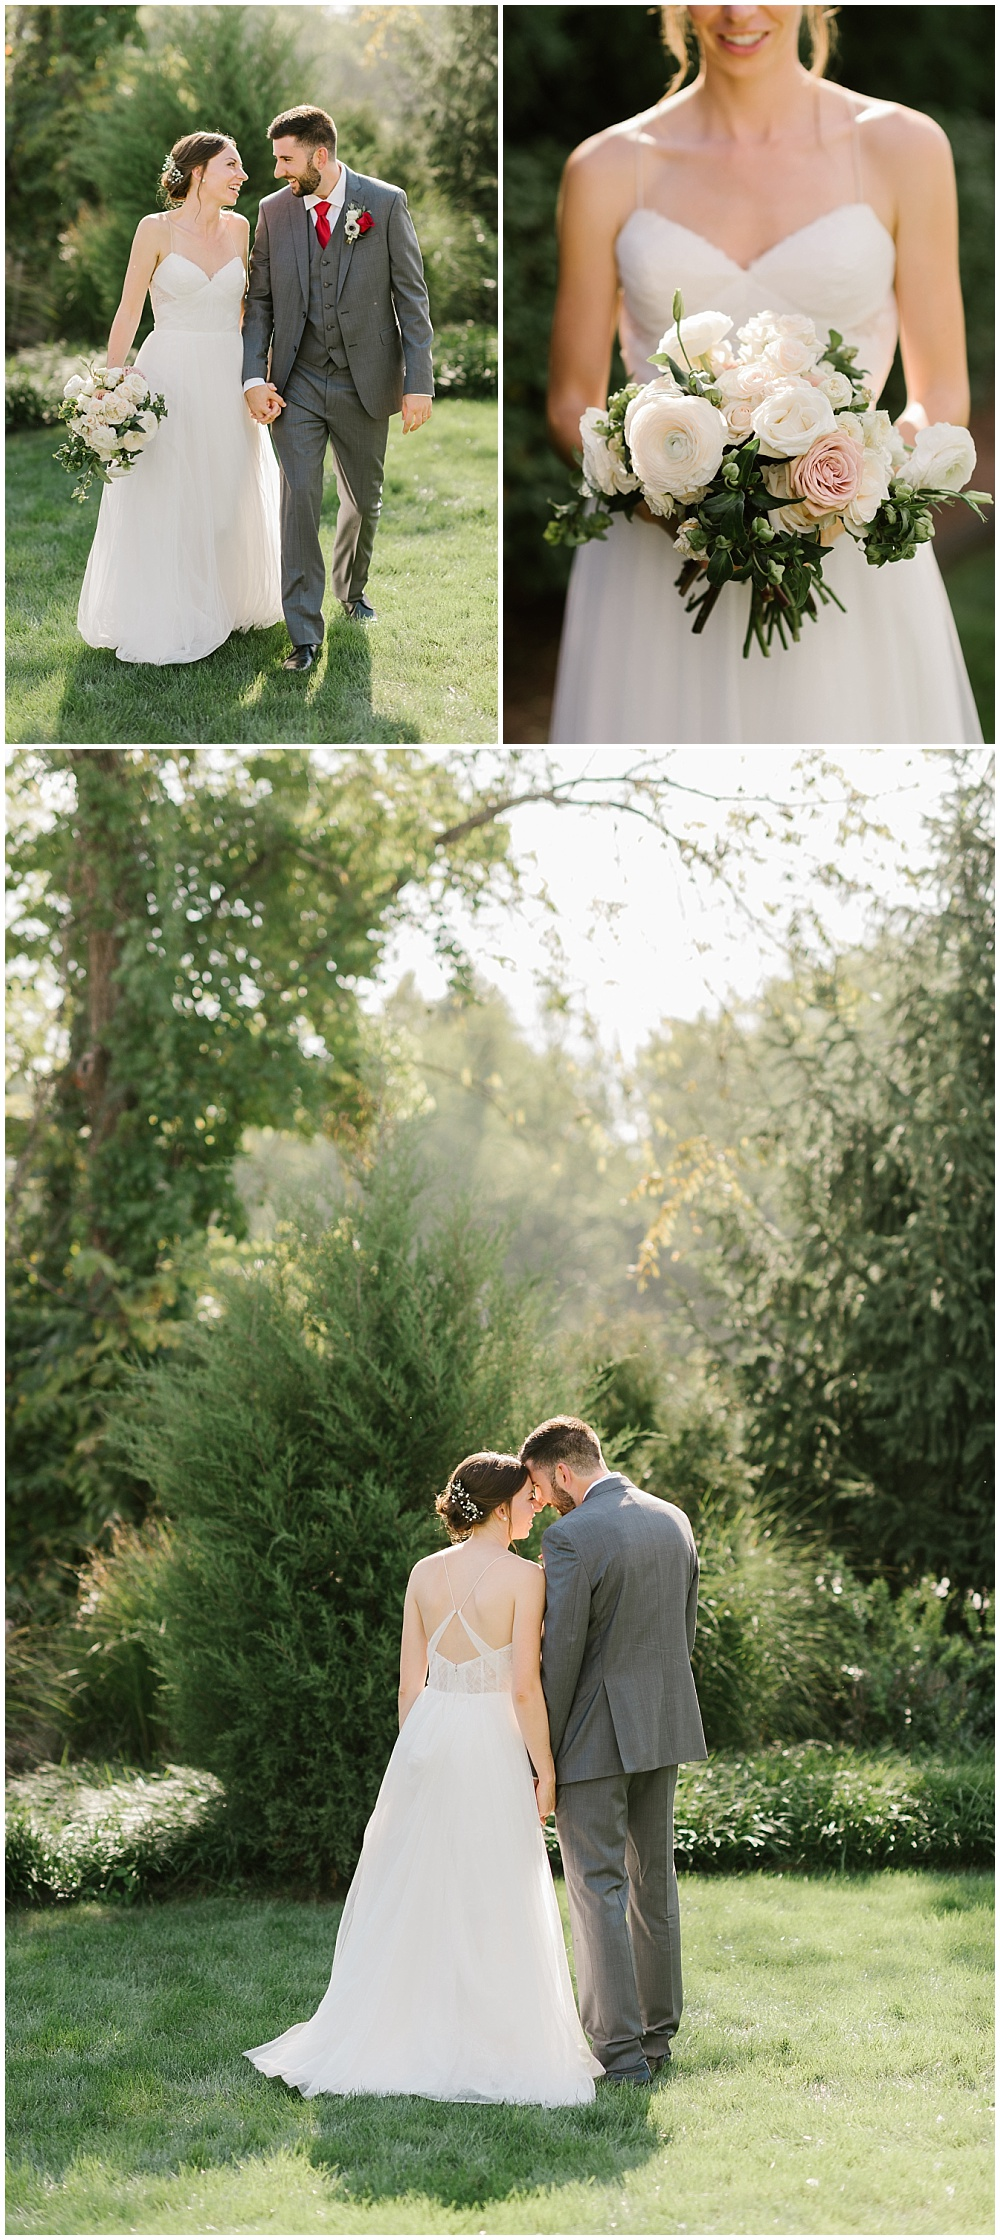 Bride and groom outdoor garden portraits and a bridal bouquet made up of white and soft blush flowers Fall garden-inspired wedding at the Ritz Charles Garden Pavilion in Carmel, Indiana   Jessica Dum Wedding Coordination